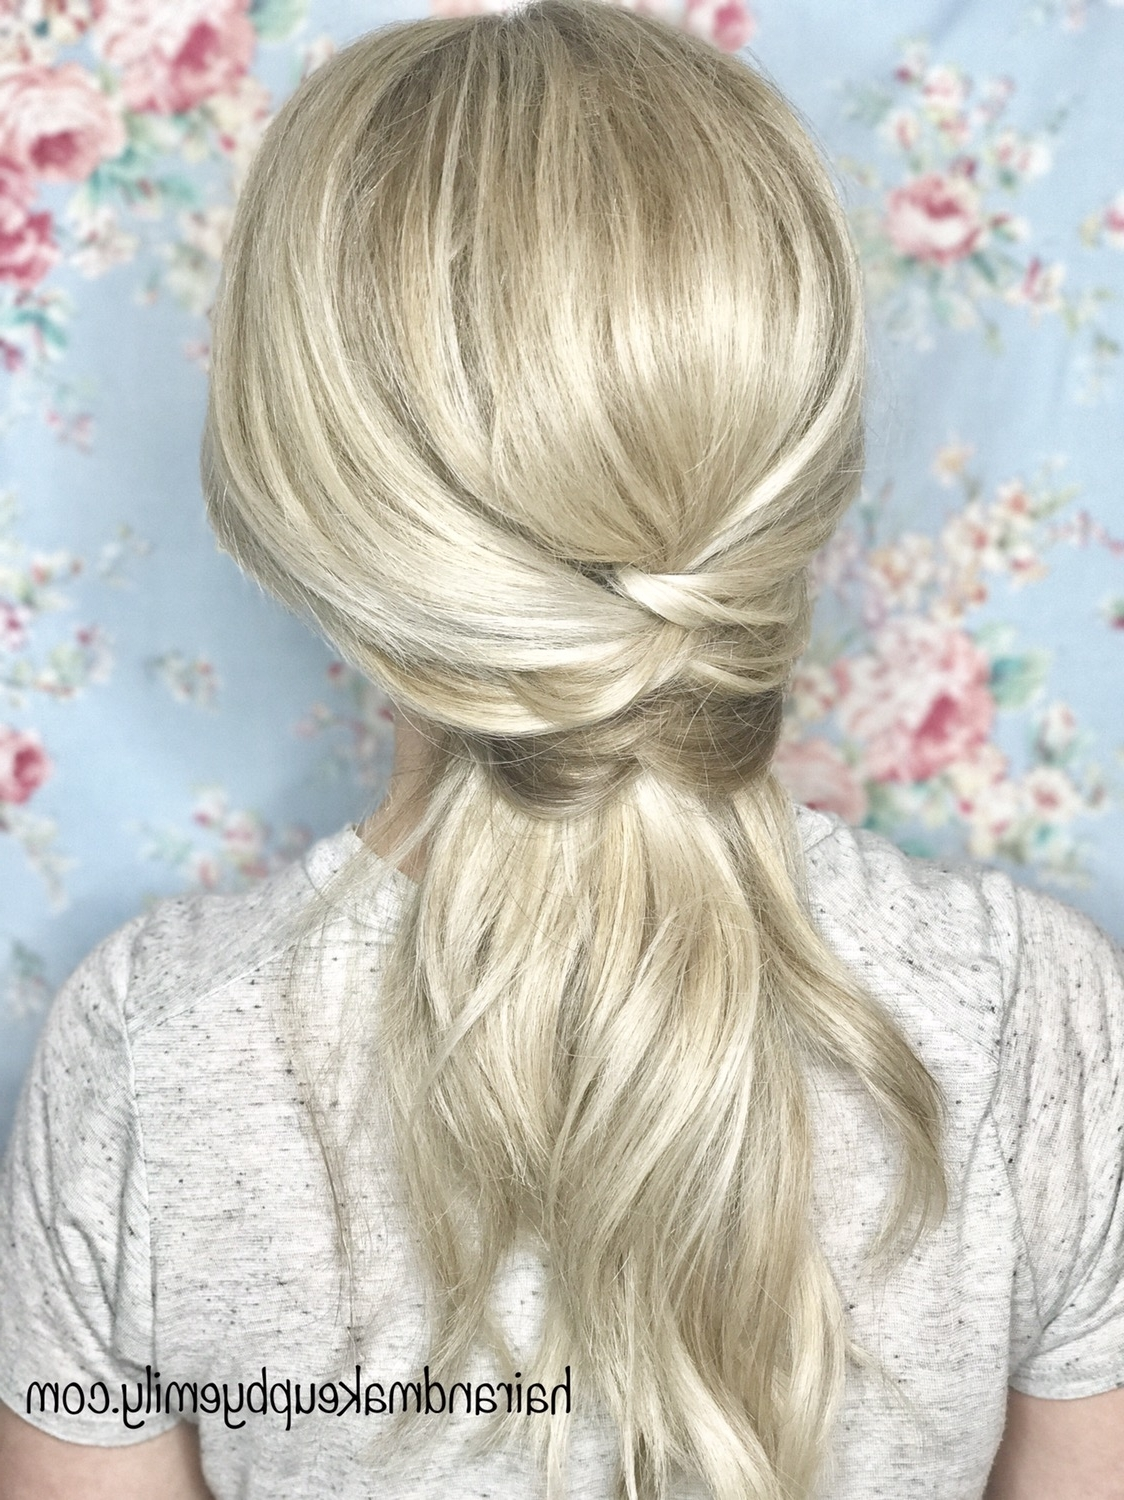 Criss Cross Ponytail – Emily Holland With Fashionable The Criss Cross Ponytail Hairstyles (View 7 of 20)